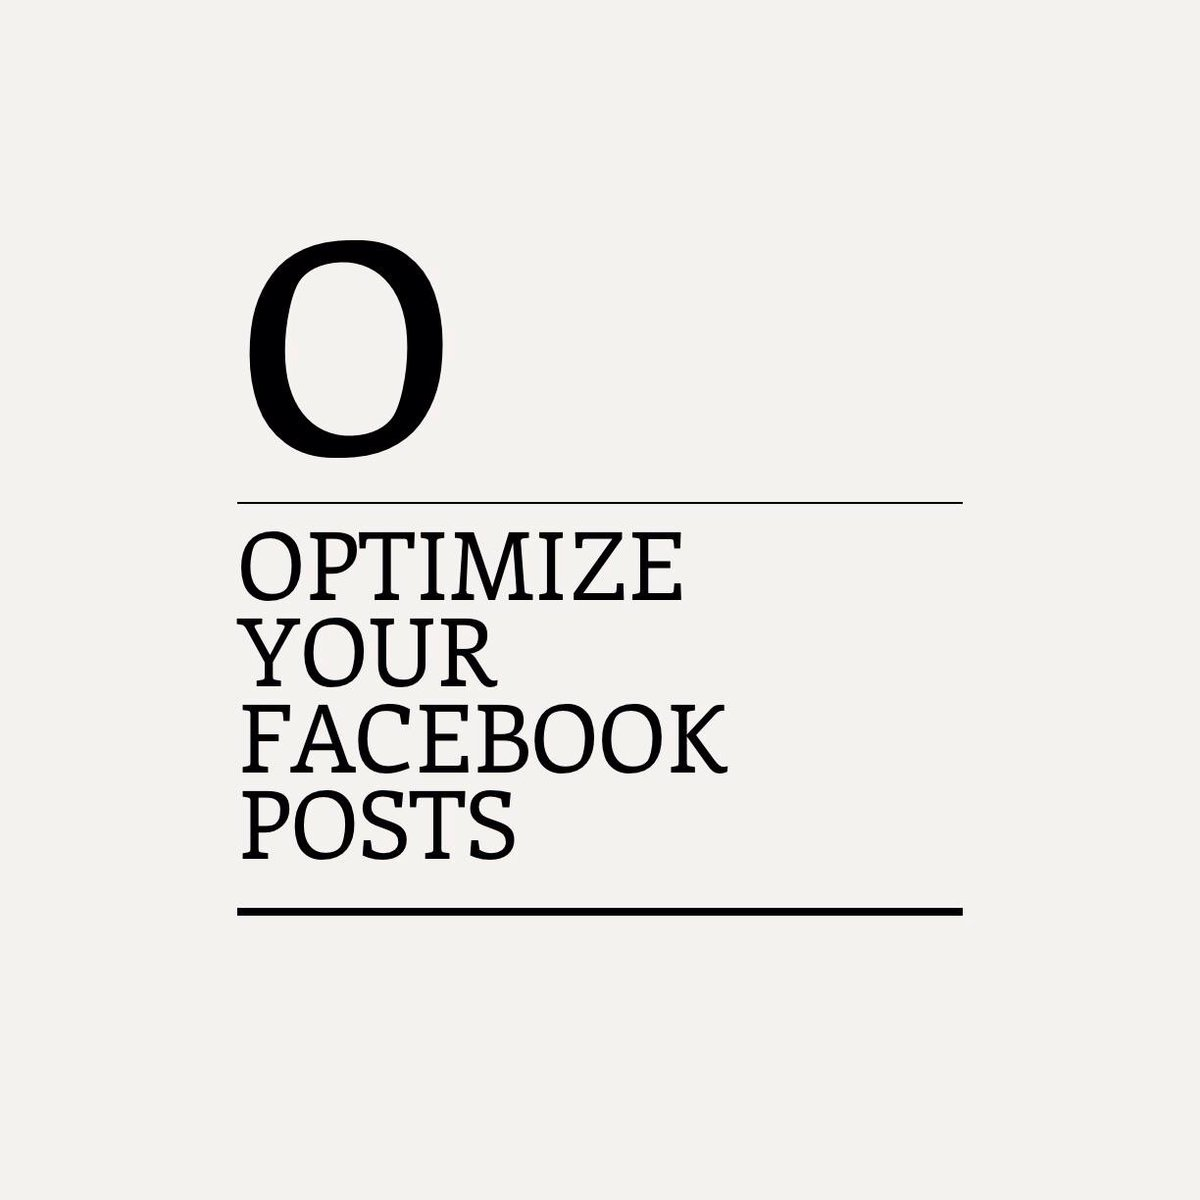 Still 20 minutes to go for our 23rd edition of #MTBchat Subject: Optimize your Facebook posts. With @Meettheblogger http://t.co/5HXuegnBaB